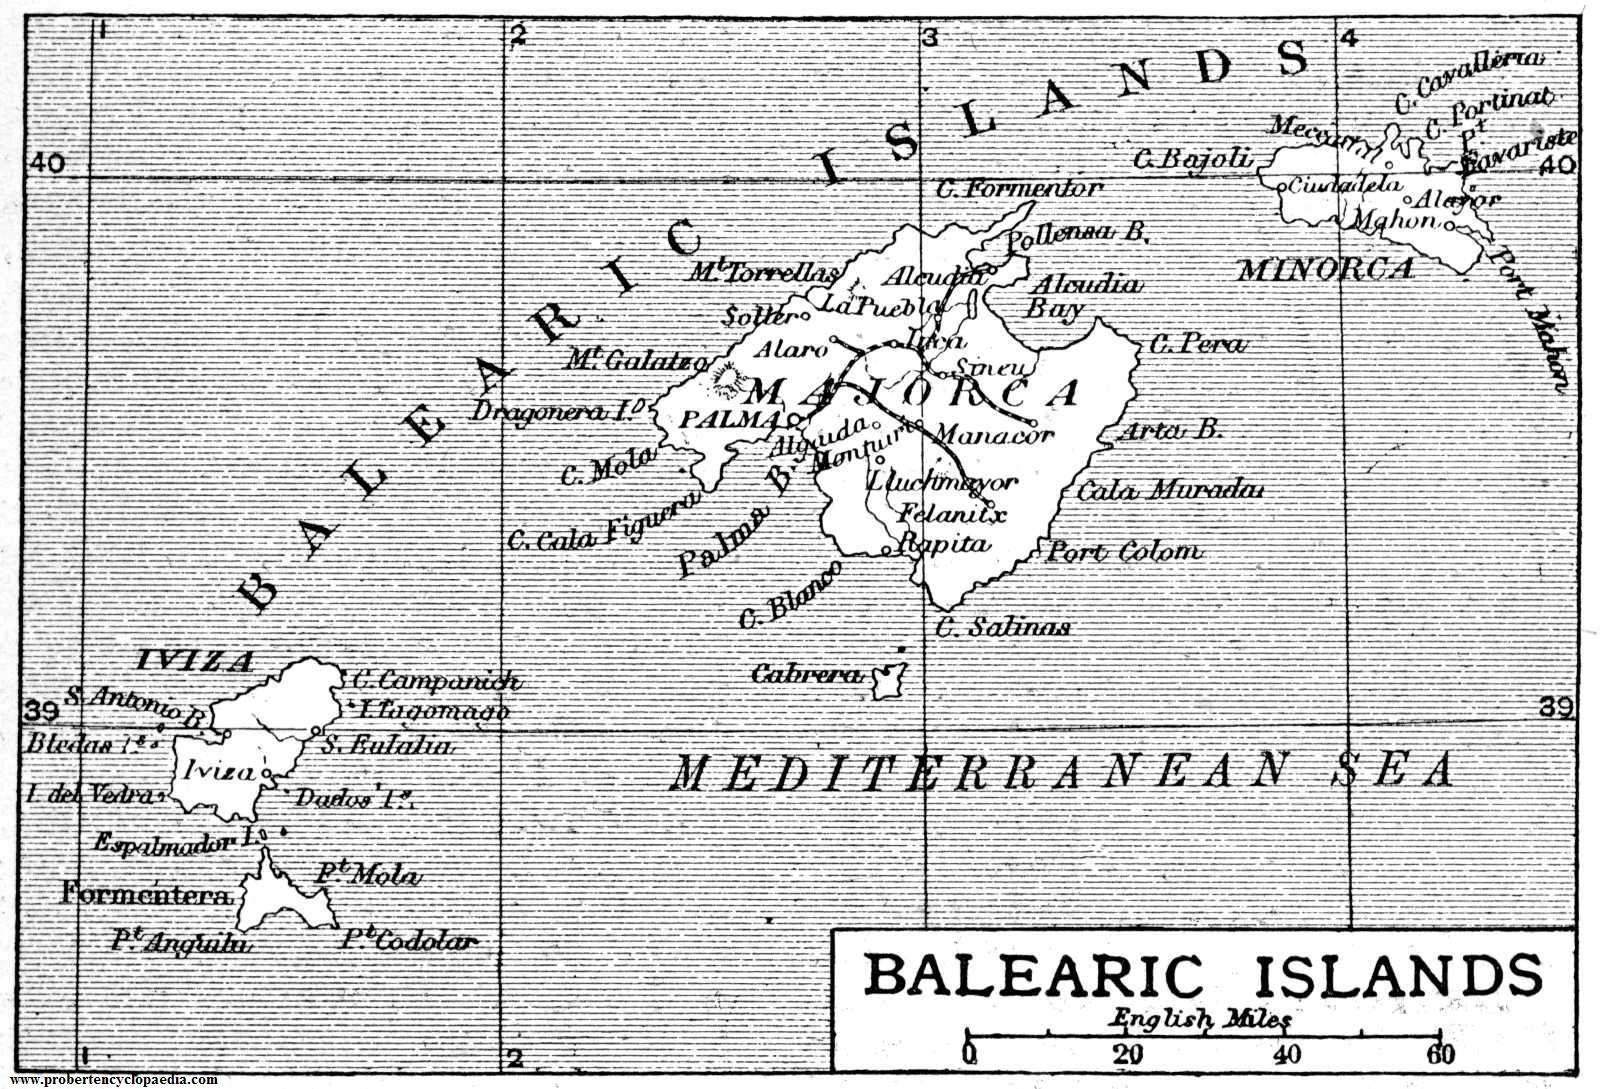 The Balearic Islands 1906